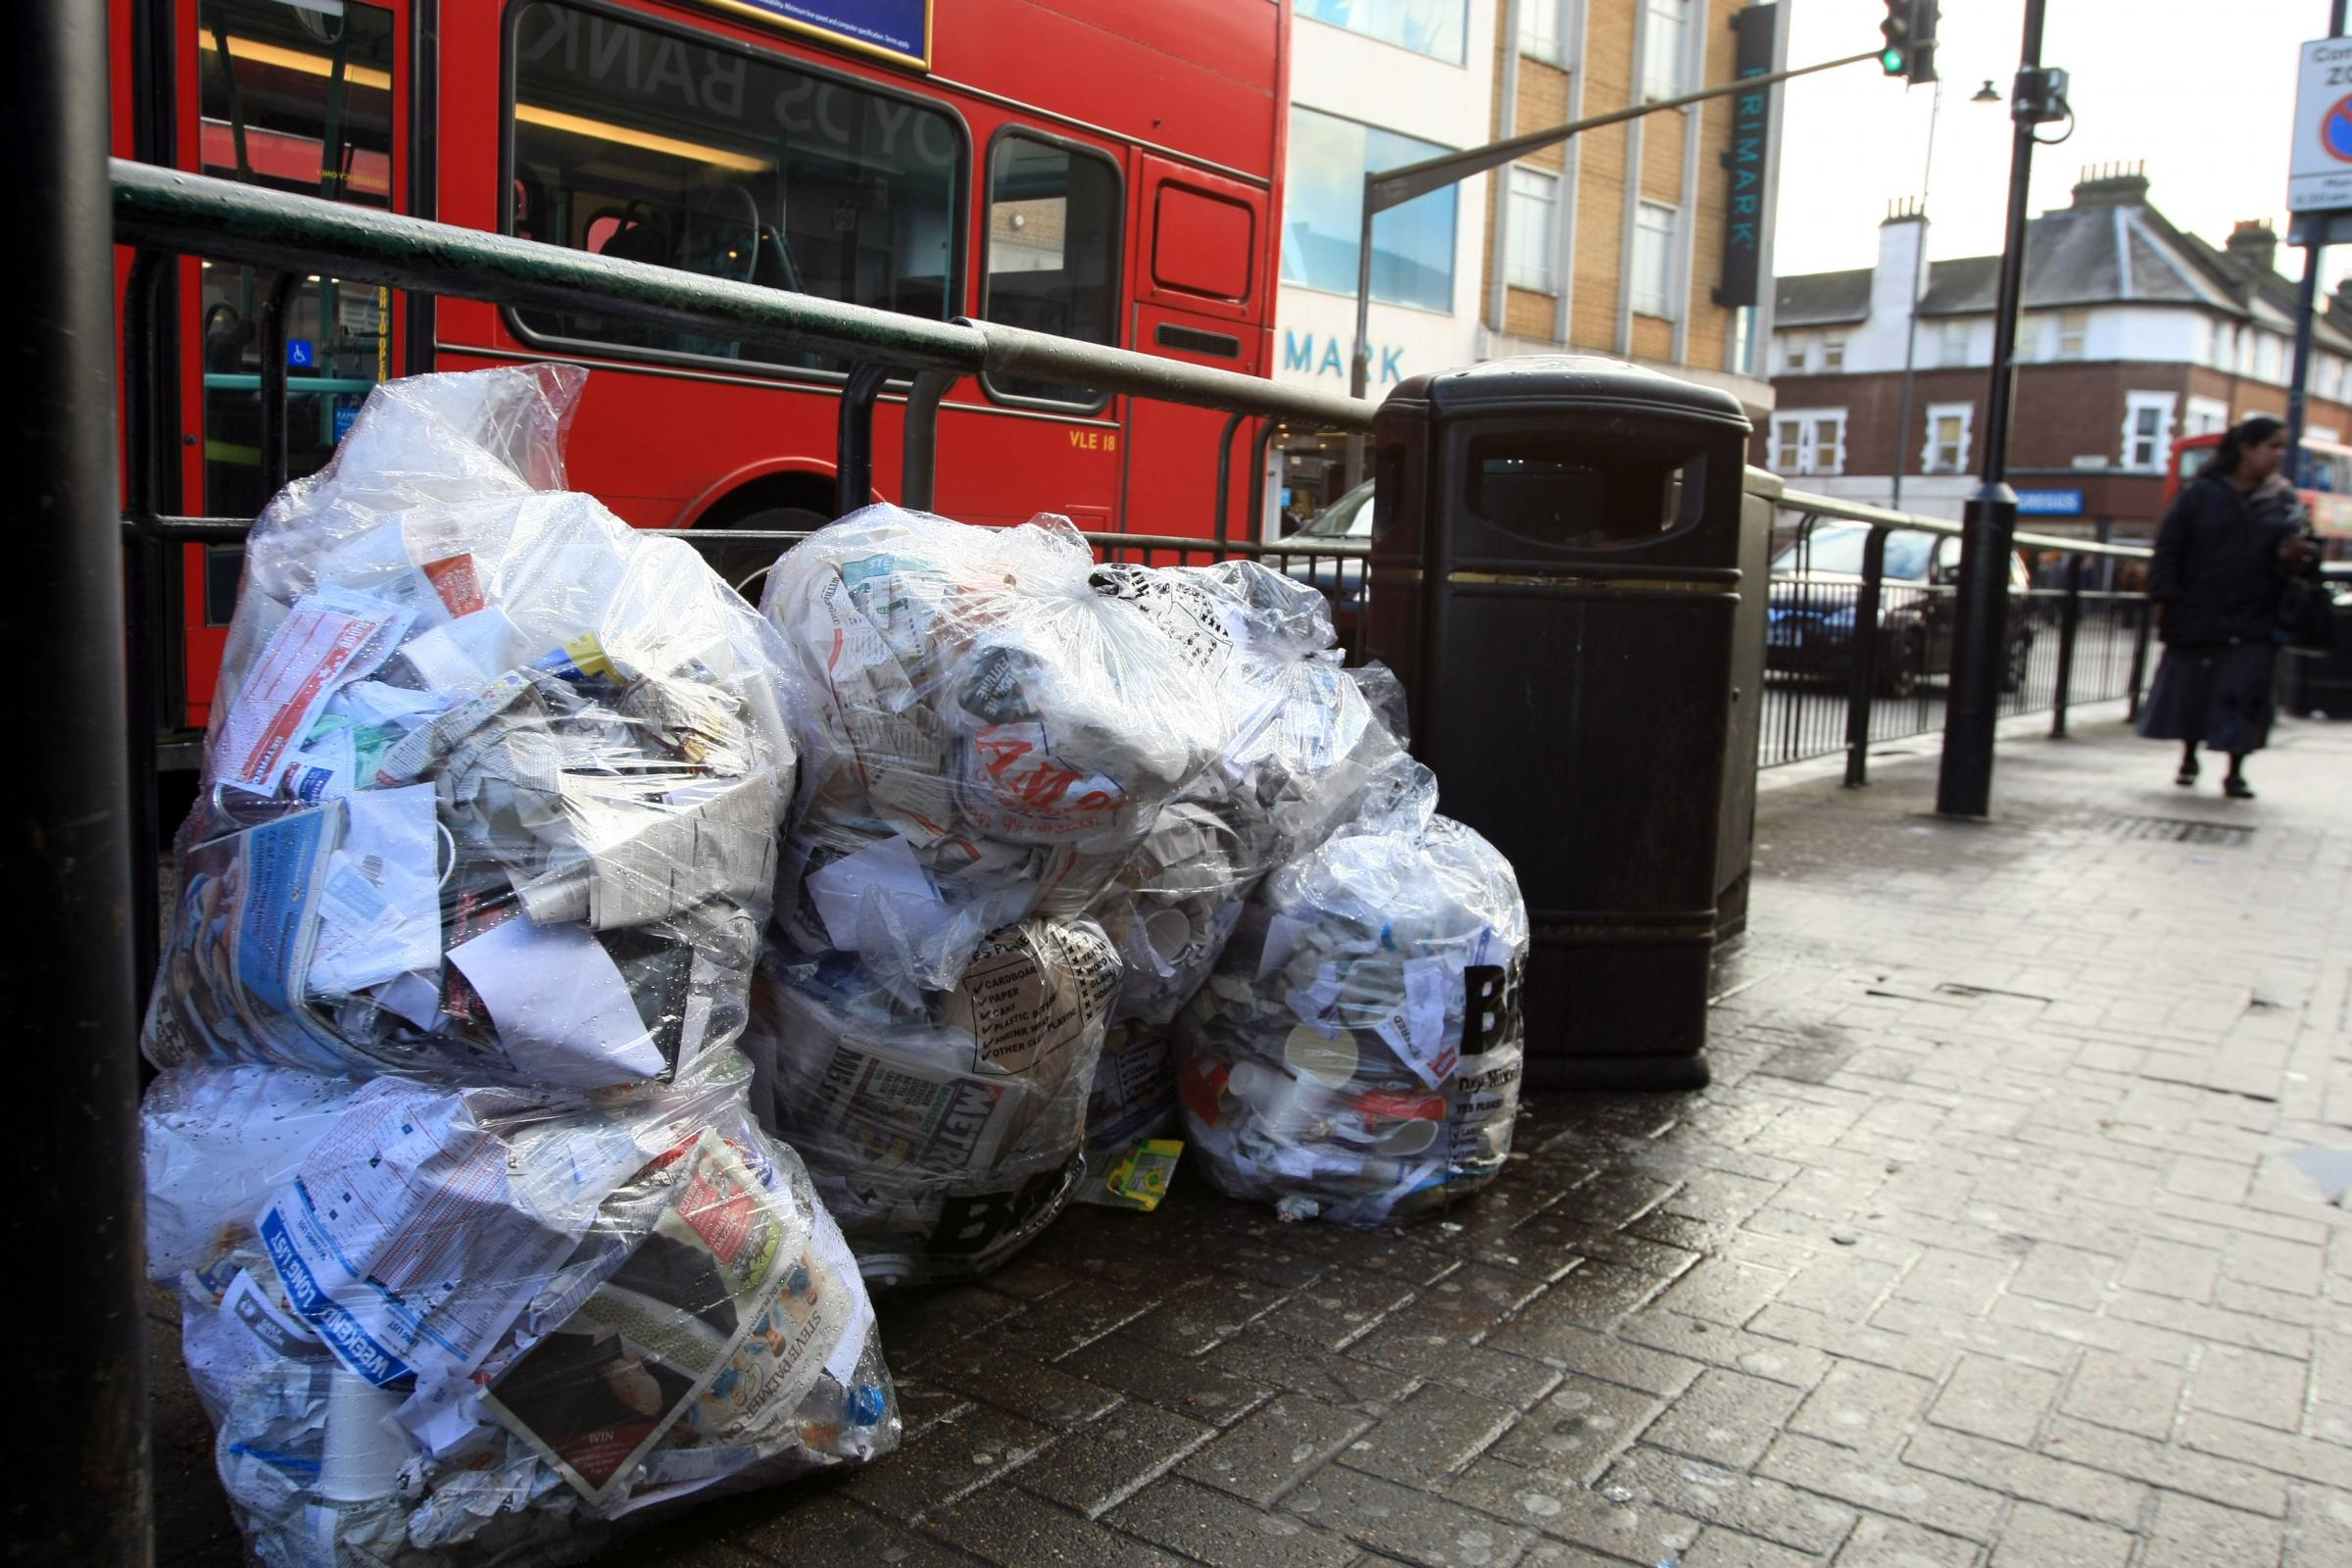 Rubbish: Led to complaints from residents and calls for wheelie bins